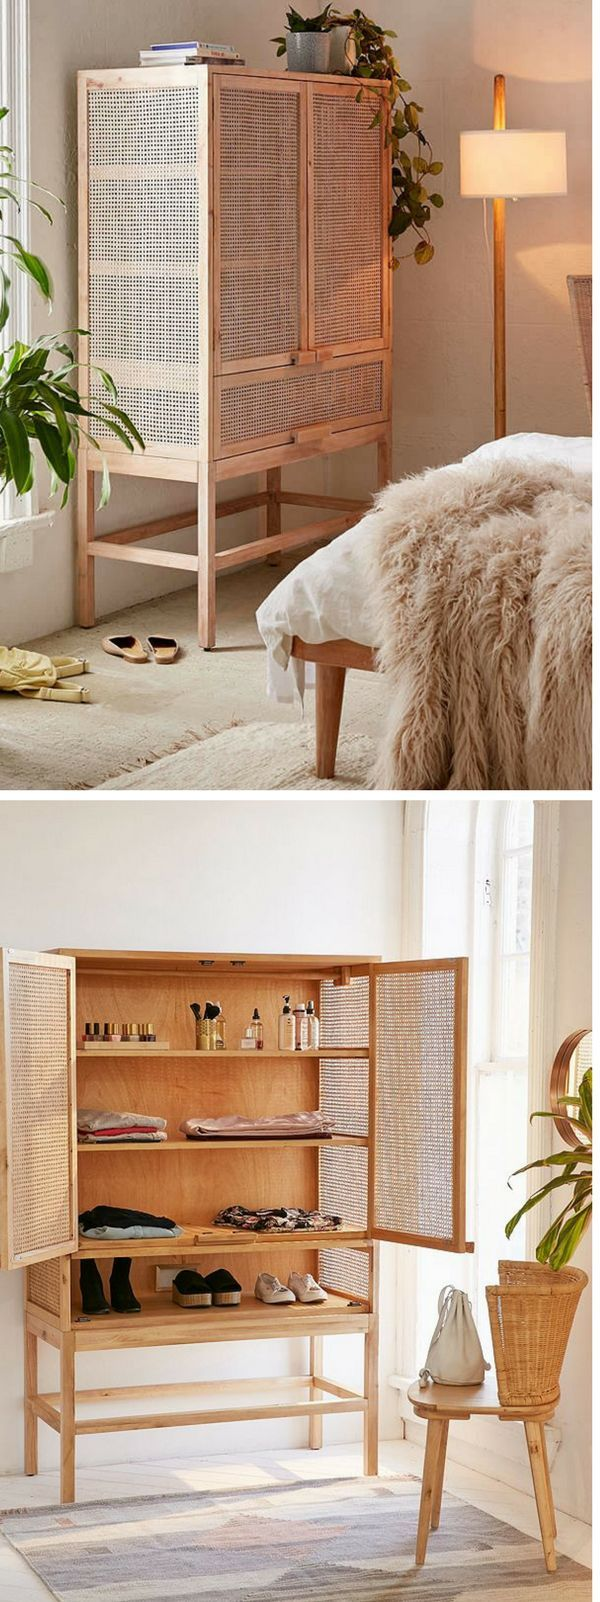 Organize Your Bedroom Smartly By Sorting Items Accordingly Into A Drawer.  Bedroom Ideas//